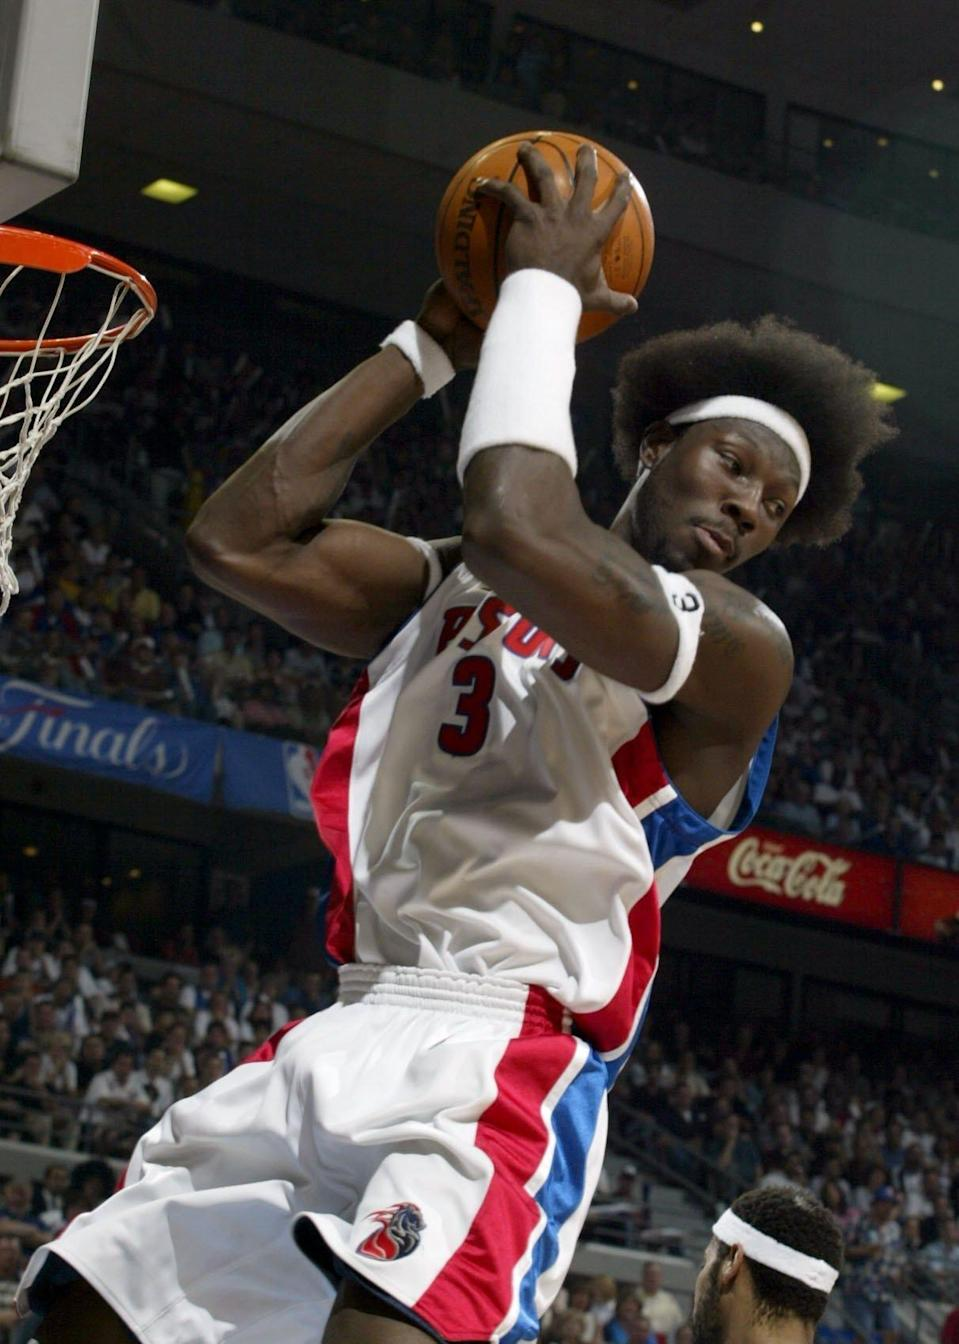 Ben Wallace pulls in a rebound against the Lakers in Game 4 of the 2004 NBA Finals at the Palace.